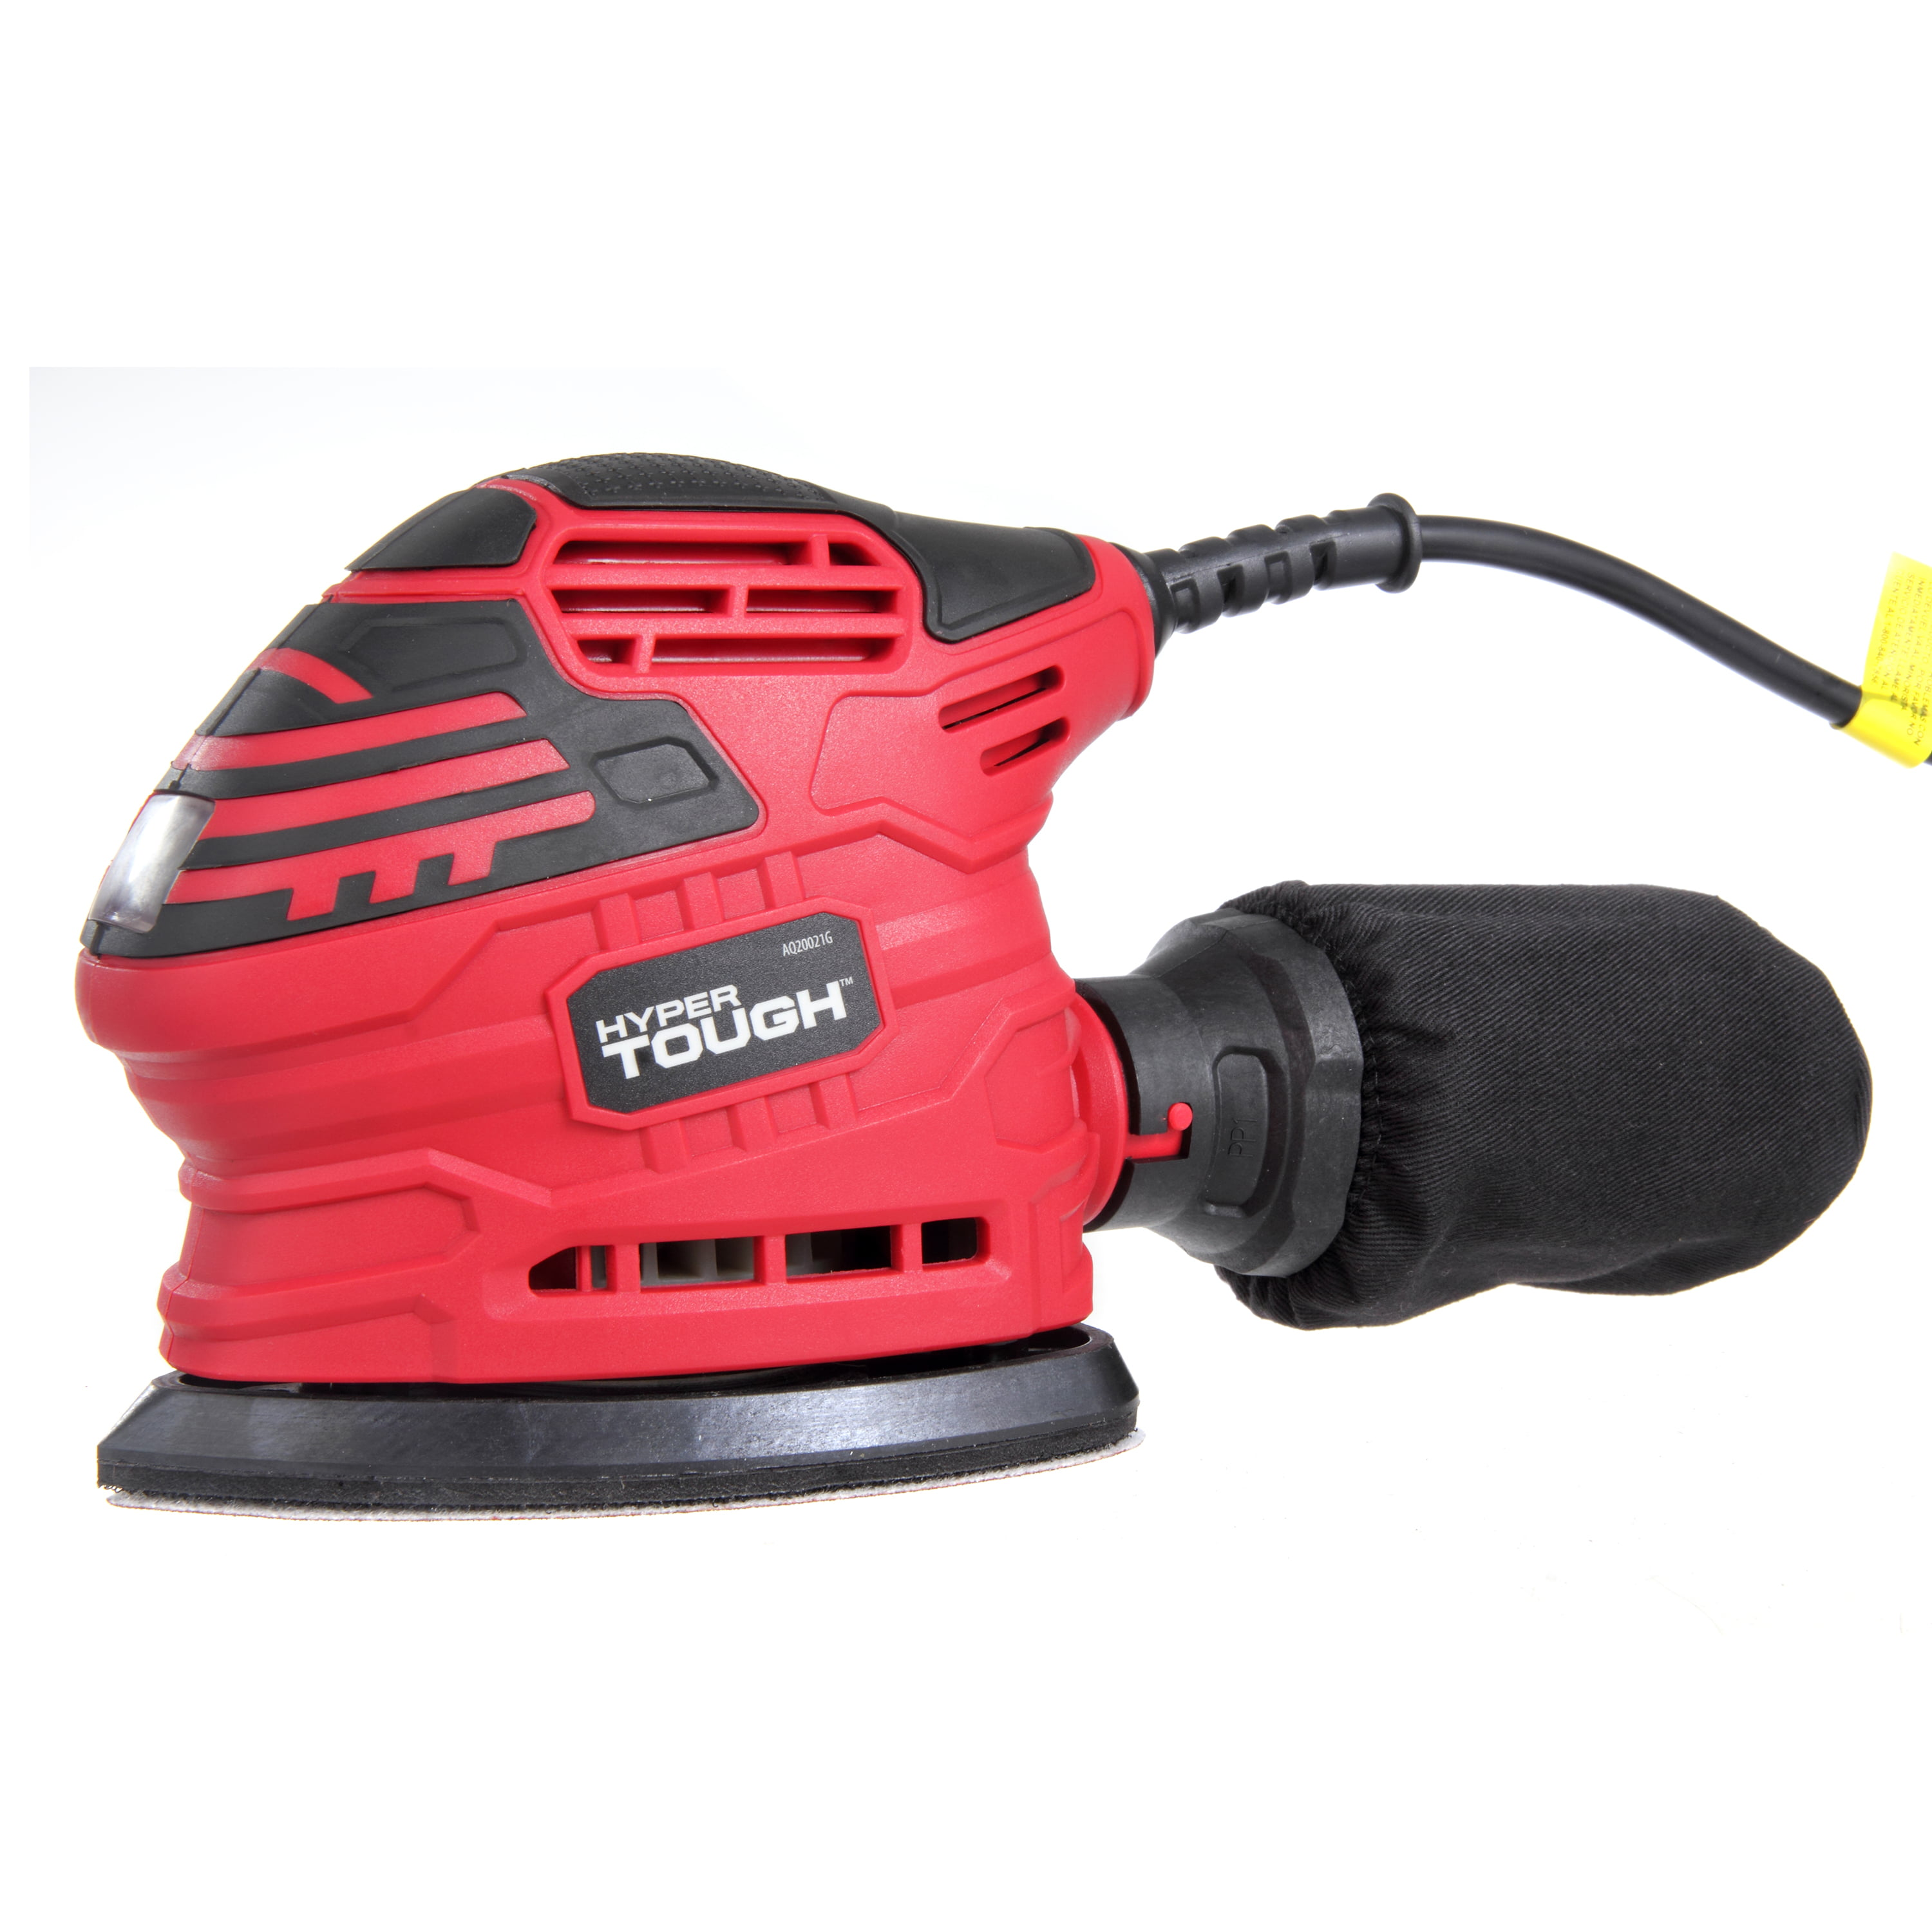 Hyper Tough 1 5 Amp Detail Sander